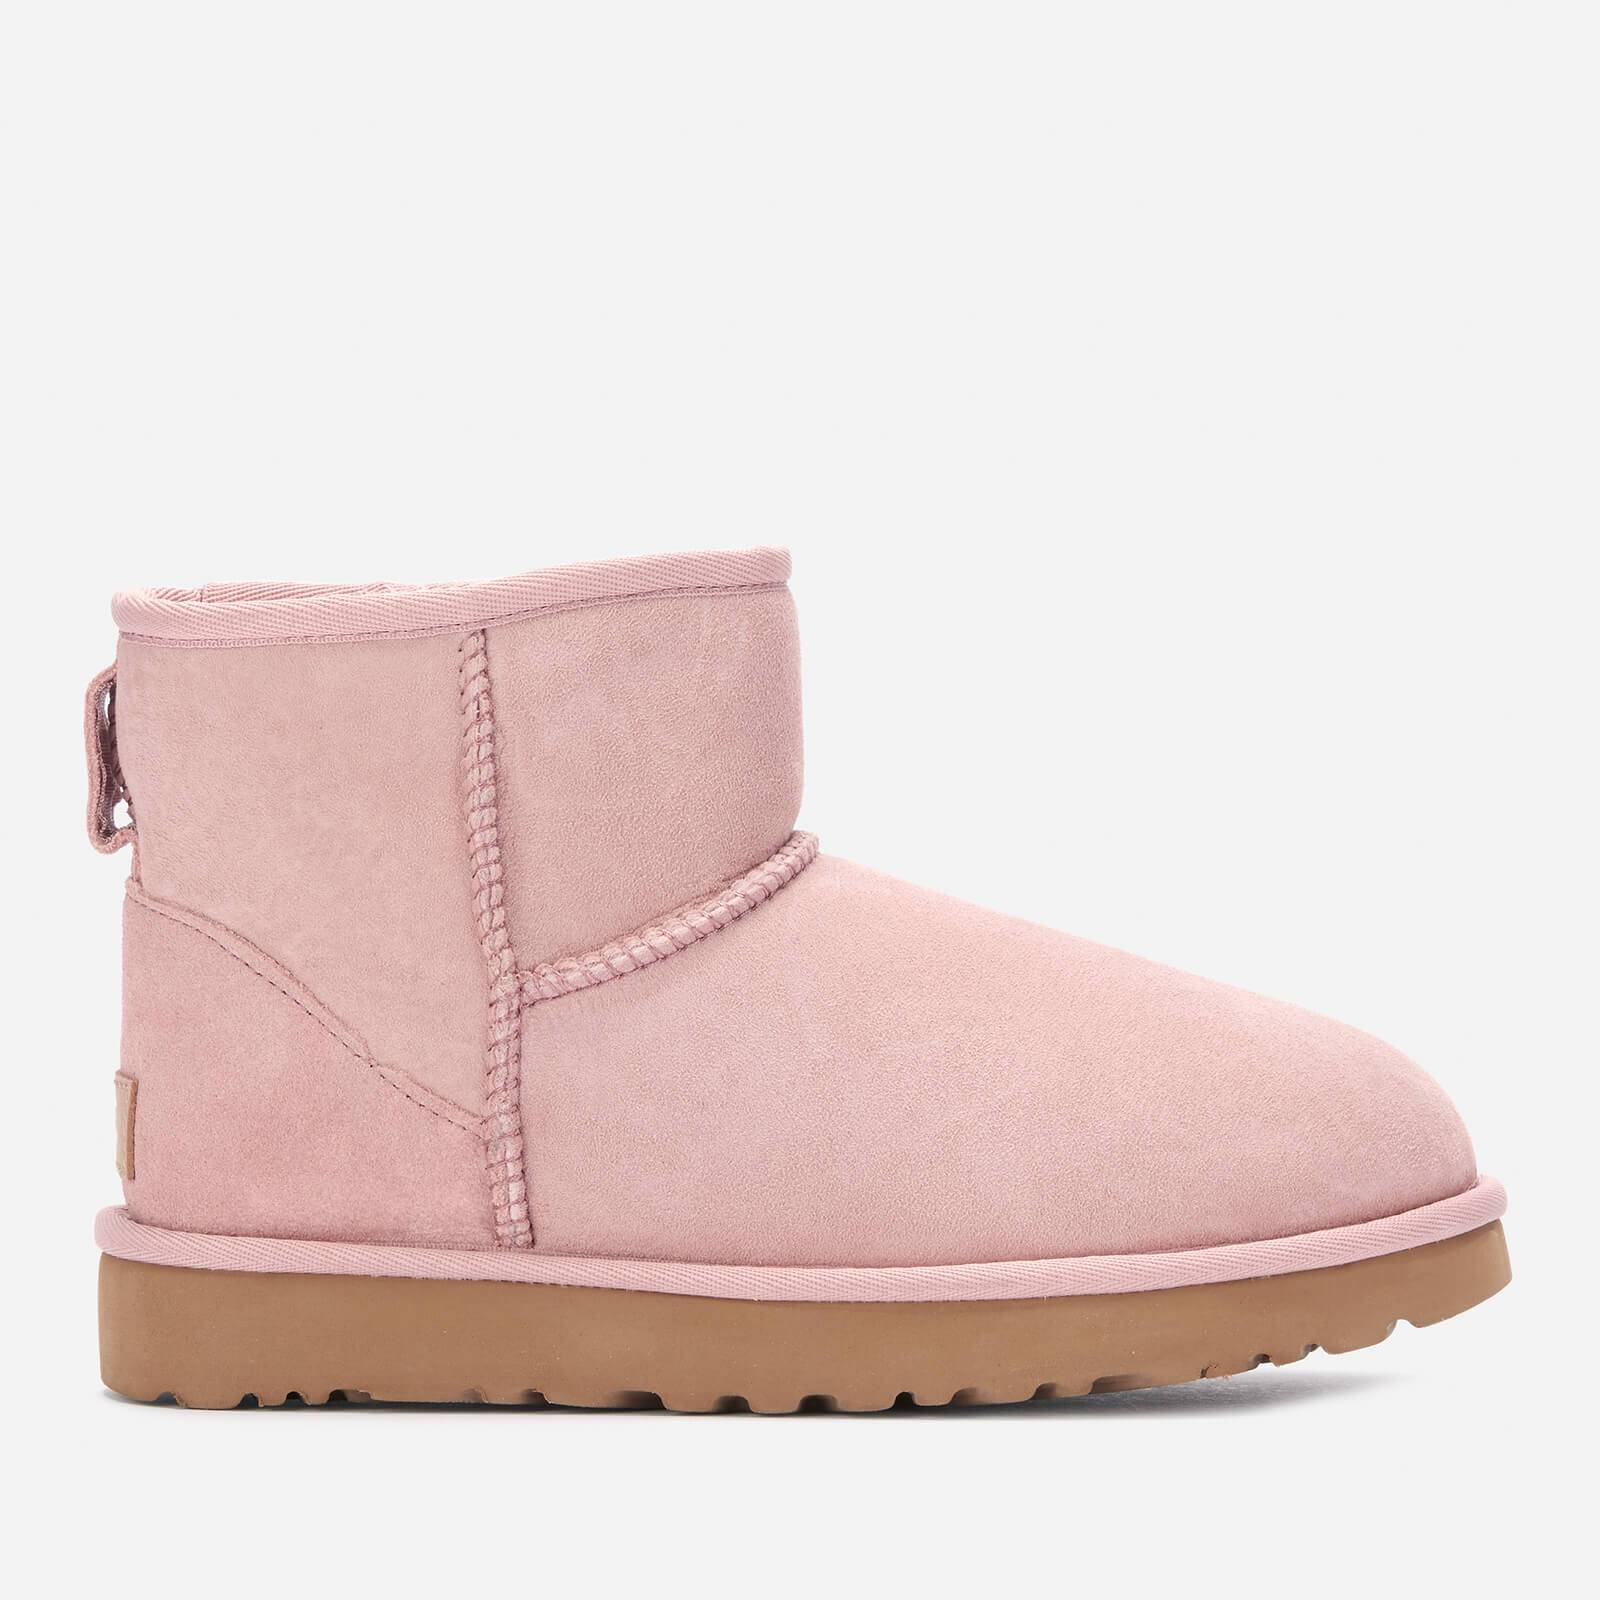 UGG Women's Classic Mini II Sheepskin Boots - Pink Crystal - UK 7